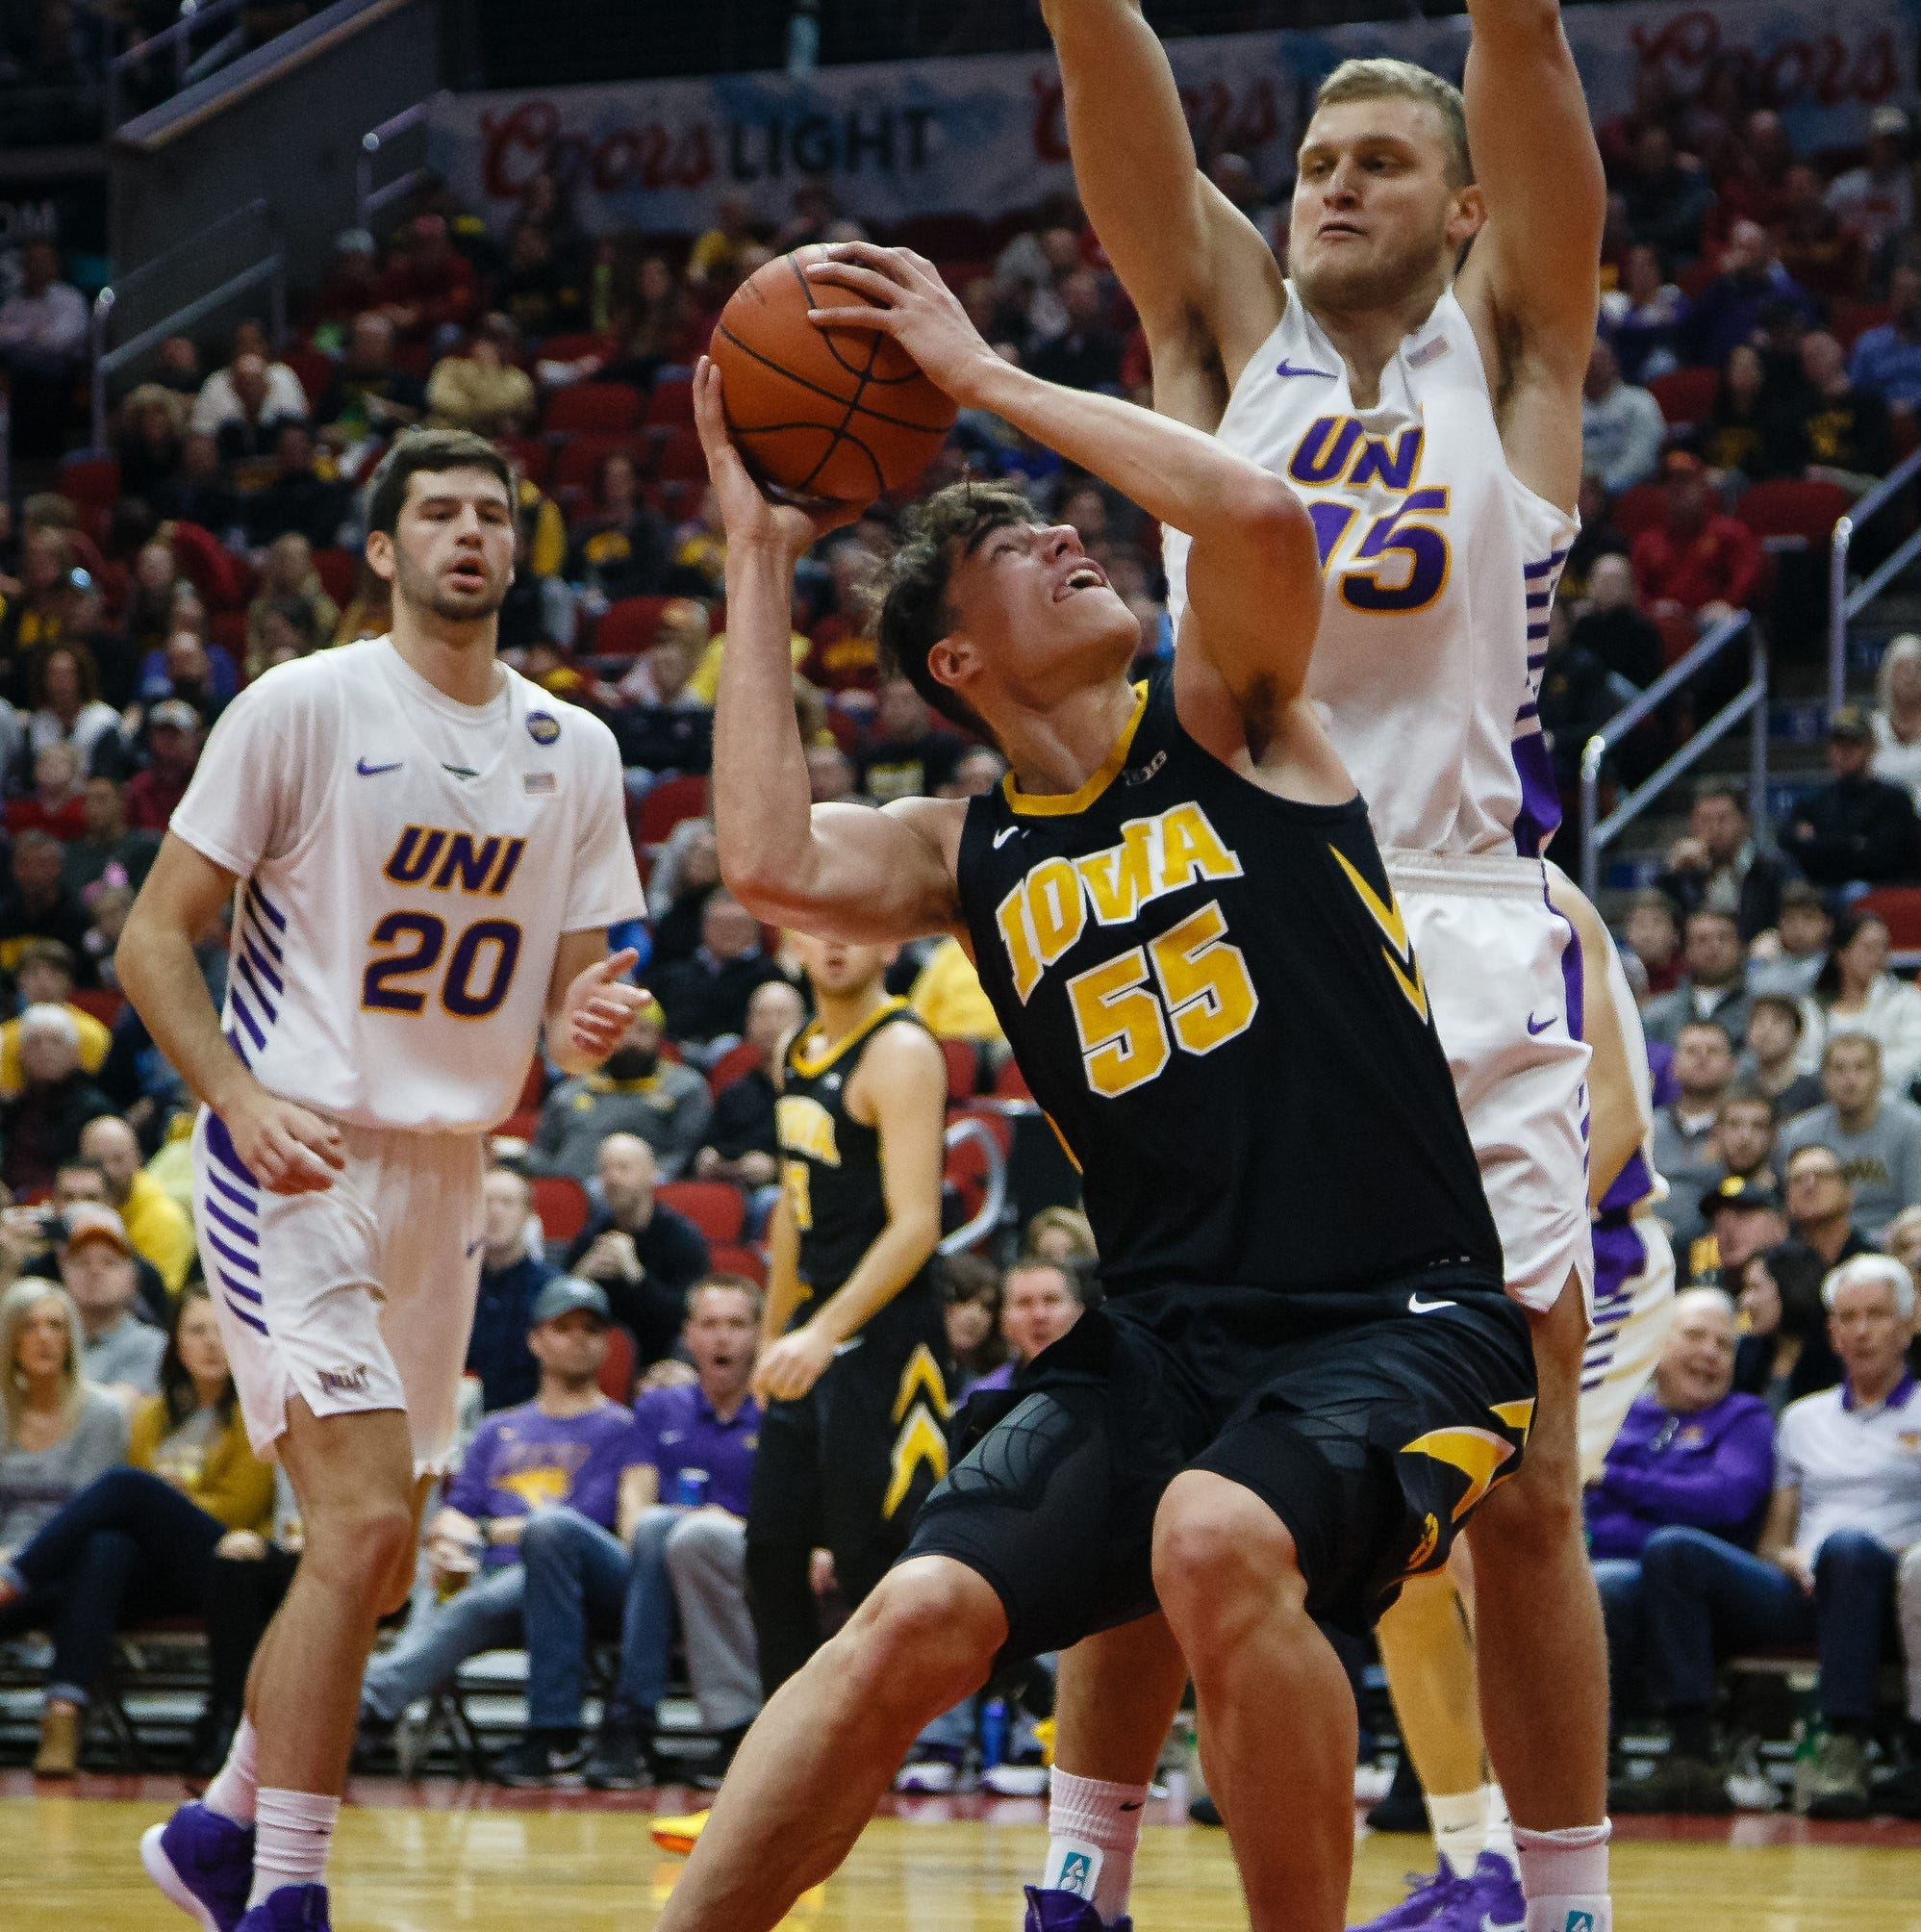 After two quiet outings, Iowa center Luka Garza makes Northern Iowa pay